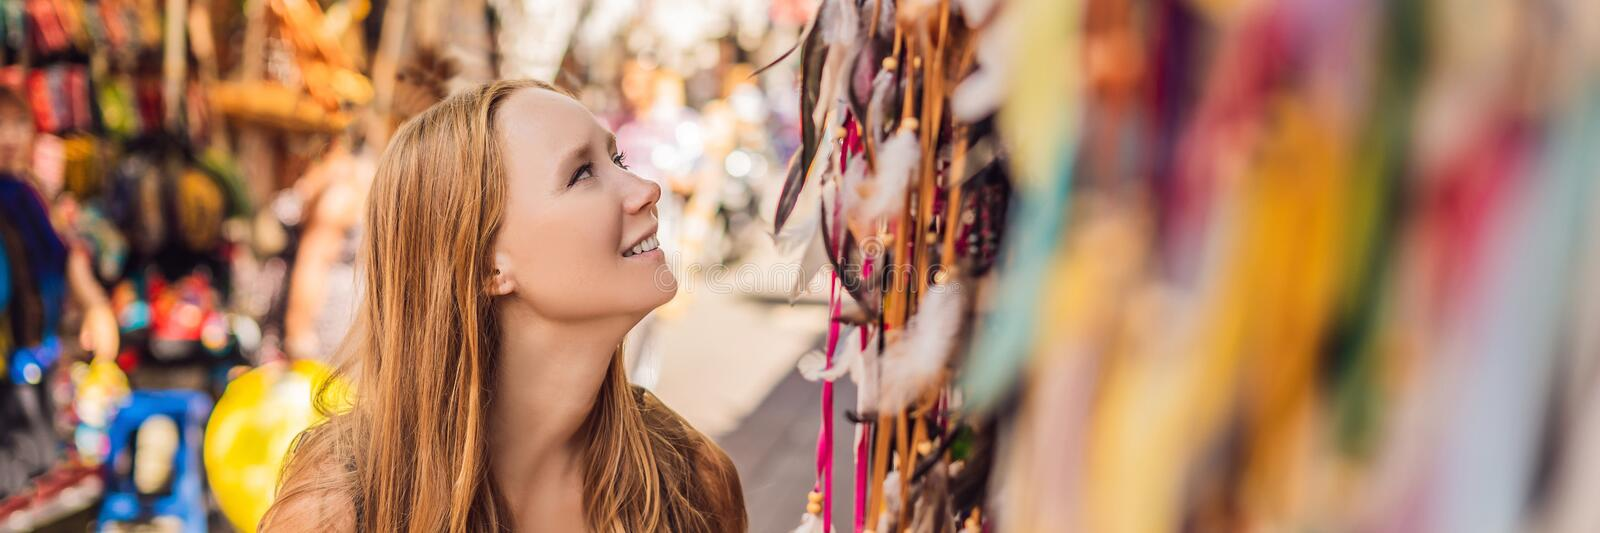 Woman traveler choose souvenirs in the market at Ubud in Bali, Indonesia BANNER, long format royalty free stock photography